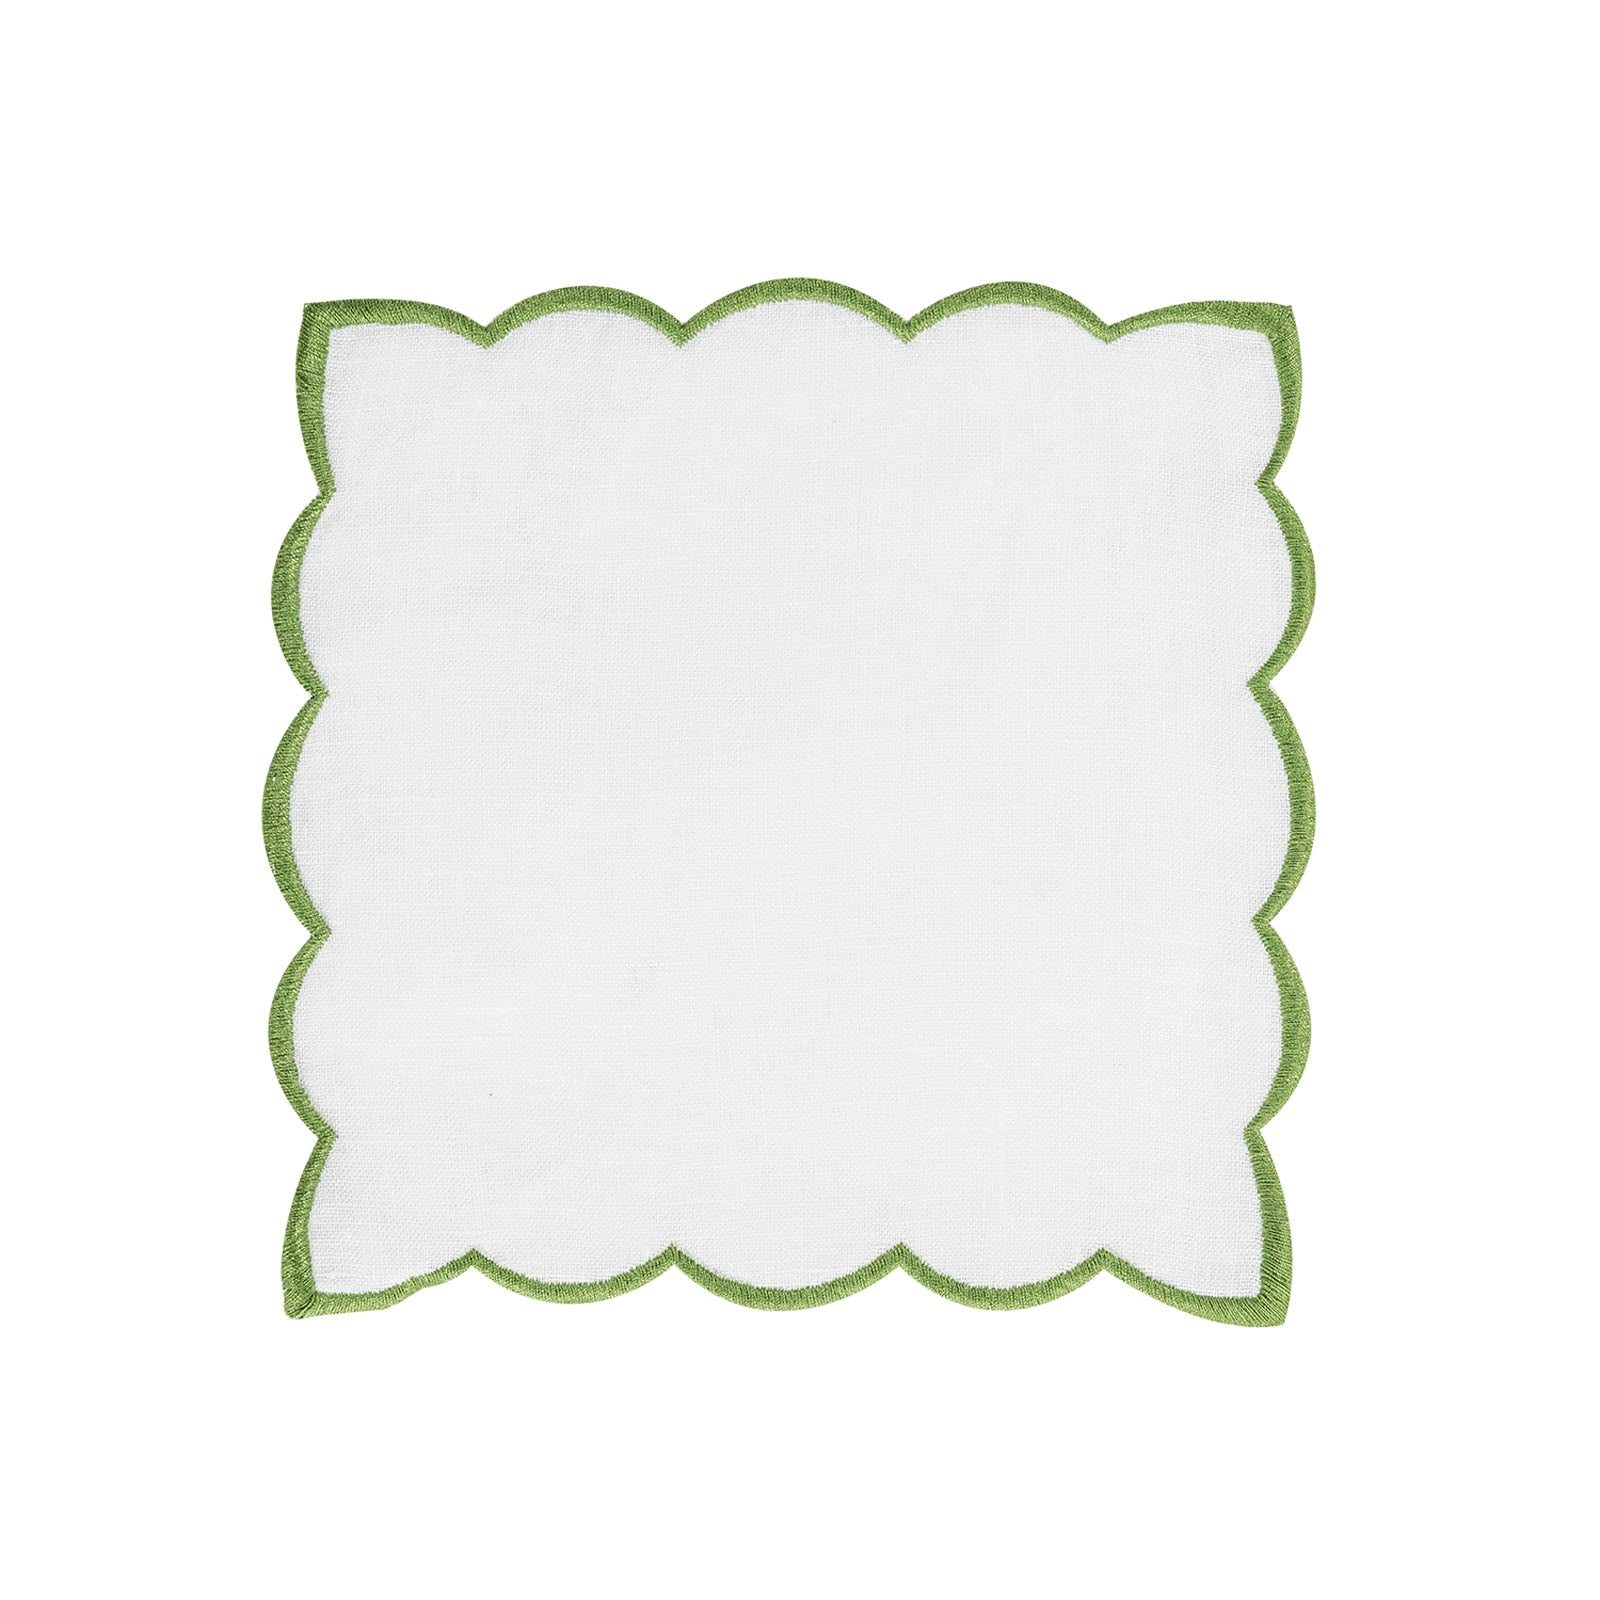 Set of 6 Linen Green Scalloped Napkins